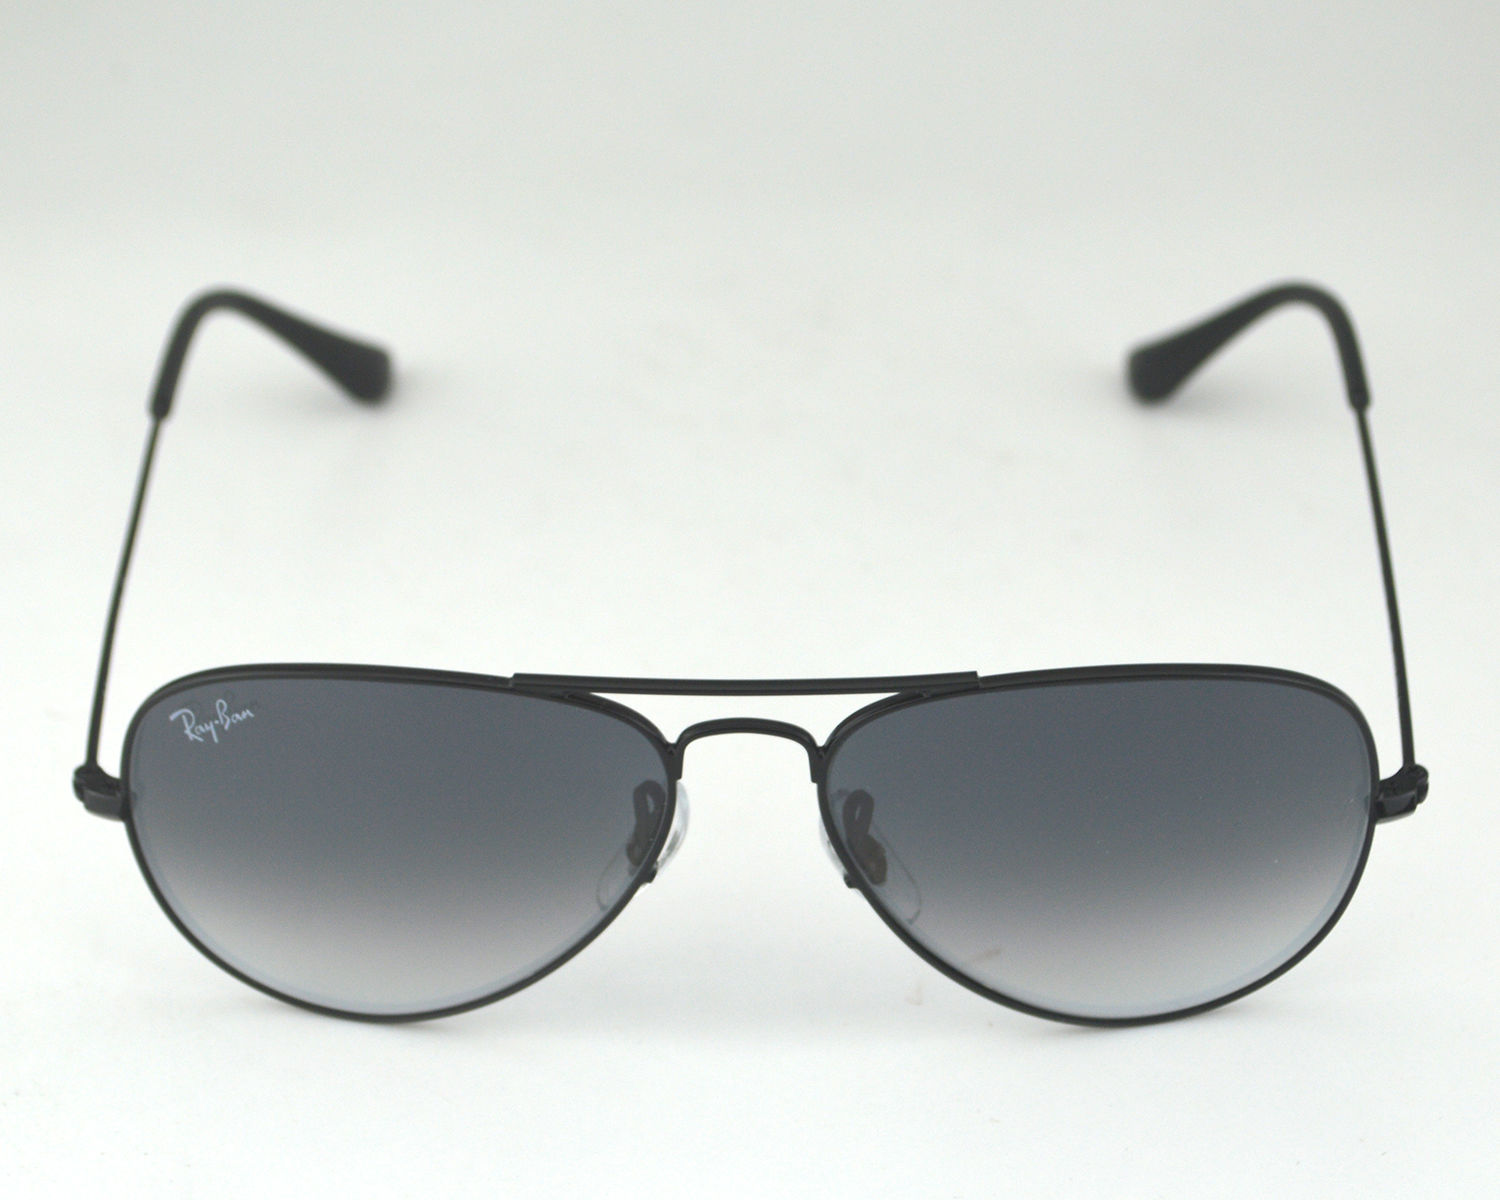 084dbffcd03 Ray-Ban RB3025 Aviator 002 32 Black Metal Frame Polarized Blue Gray  Gradient Lens Unisex Sunglasses 55mm